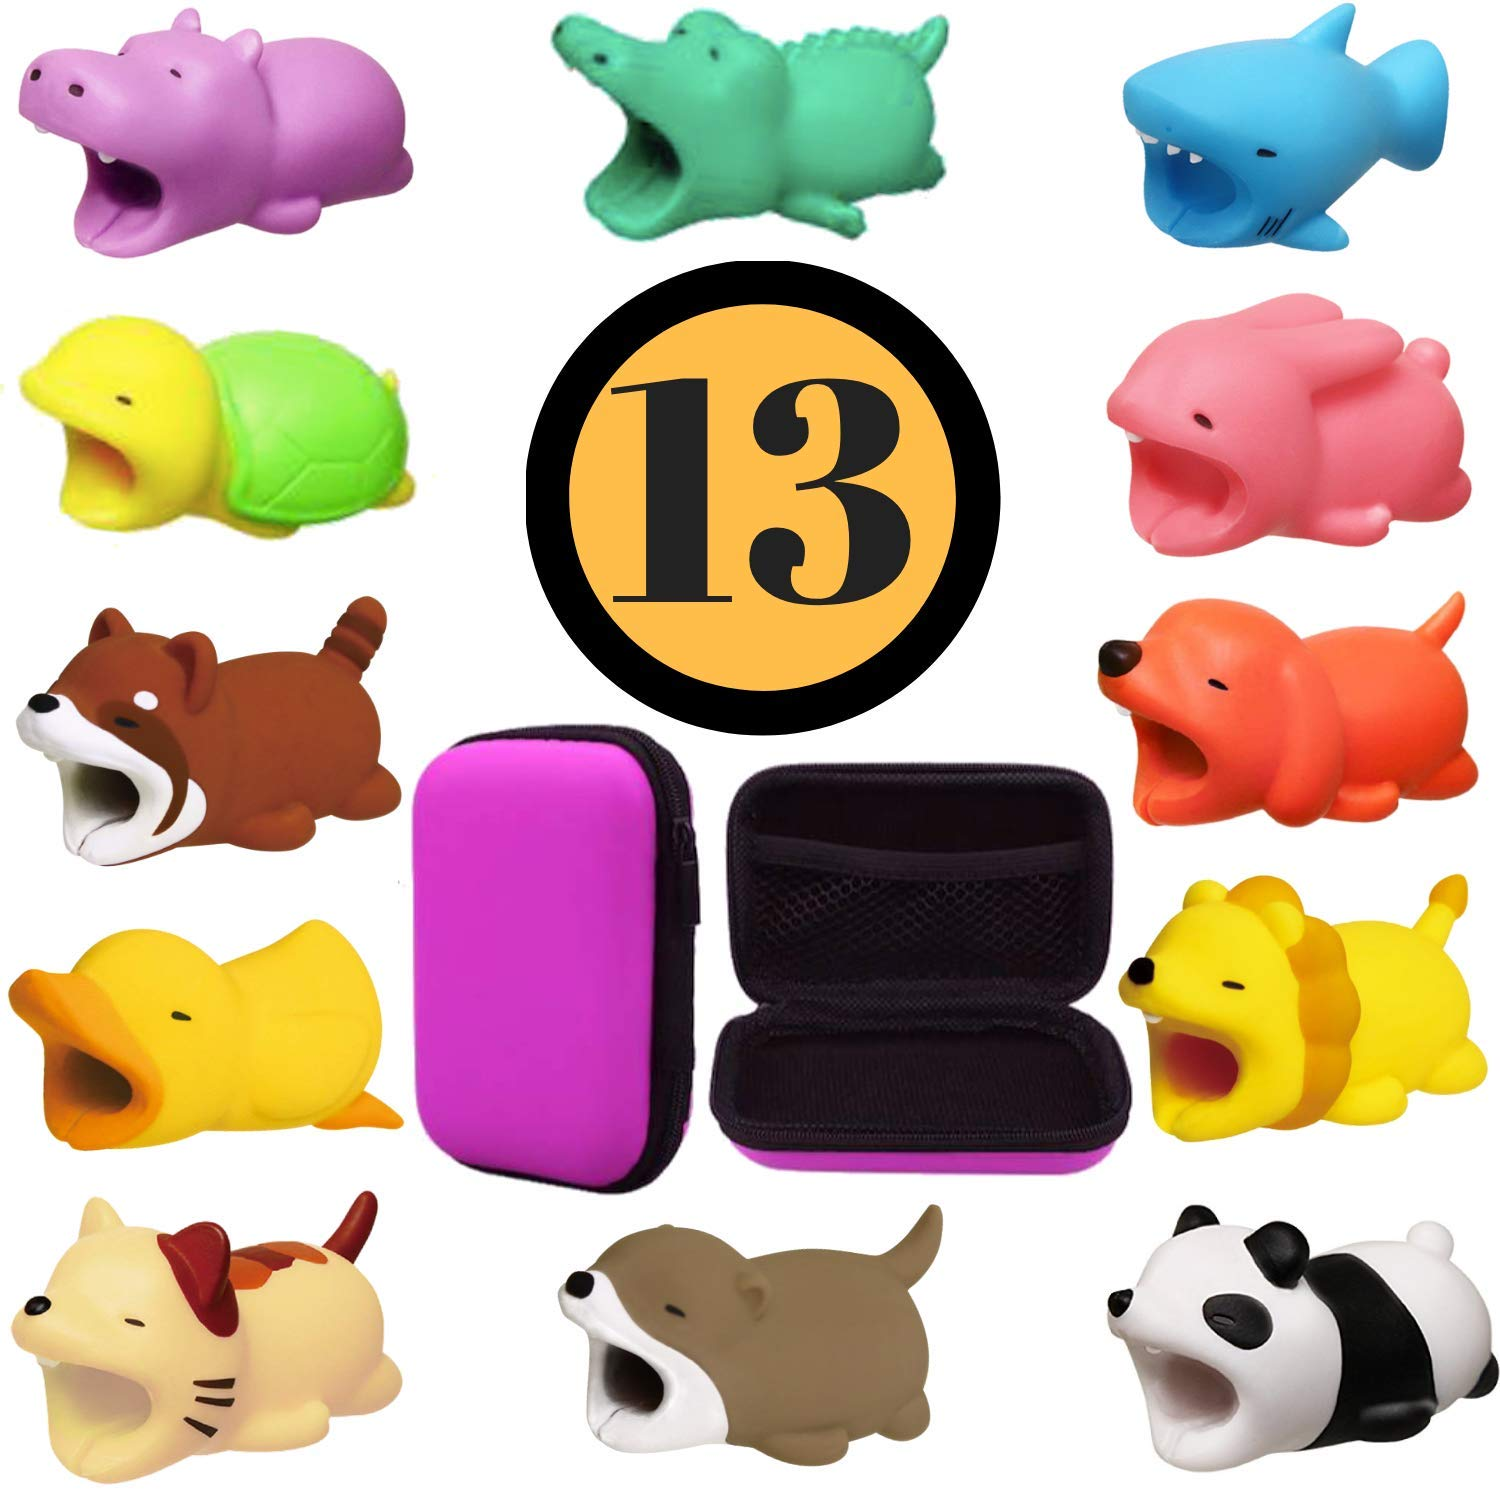 Animal Buddies Phone Cord Bites - Cable Protector for iPhone - Bite Cord Phone Accessory- Cute Animals Protects Cell Phone Accessories & Bites Data Line (13 Pieces w/Pouch) Animal Biters